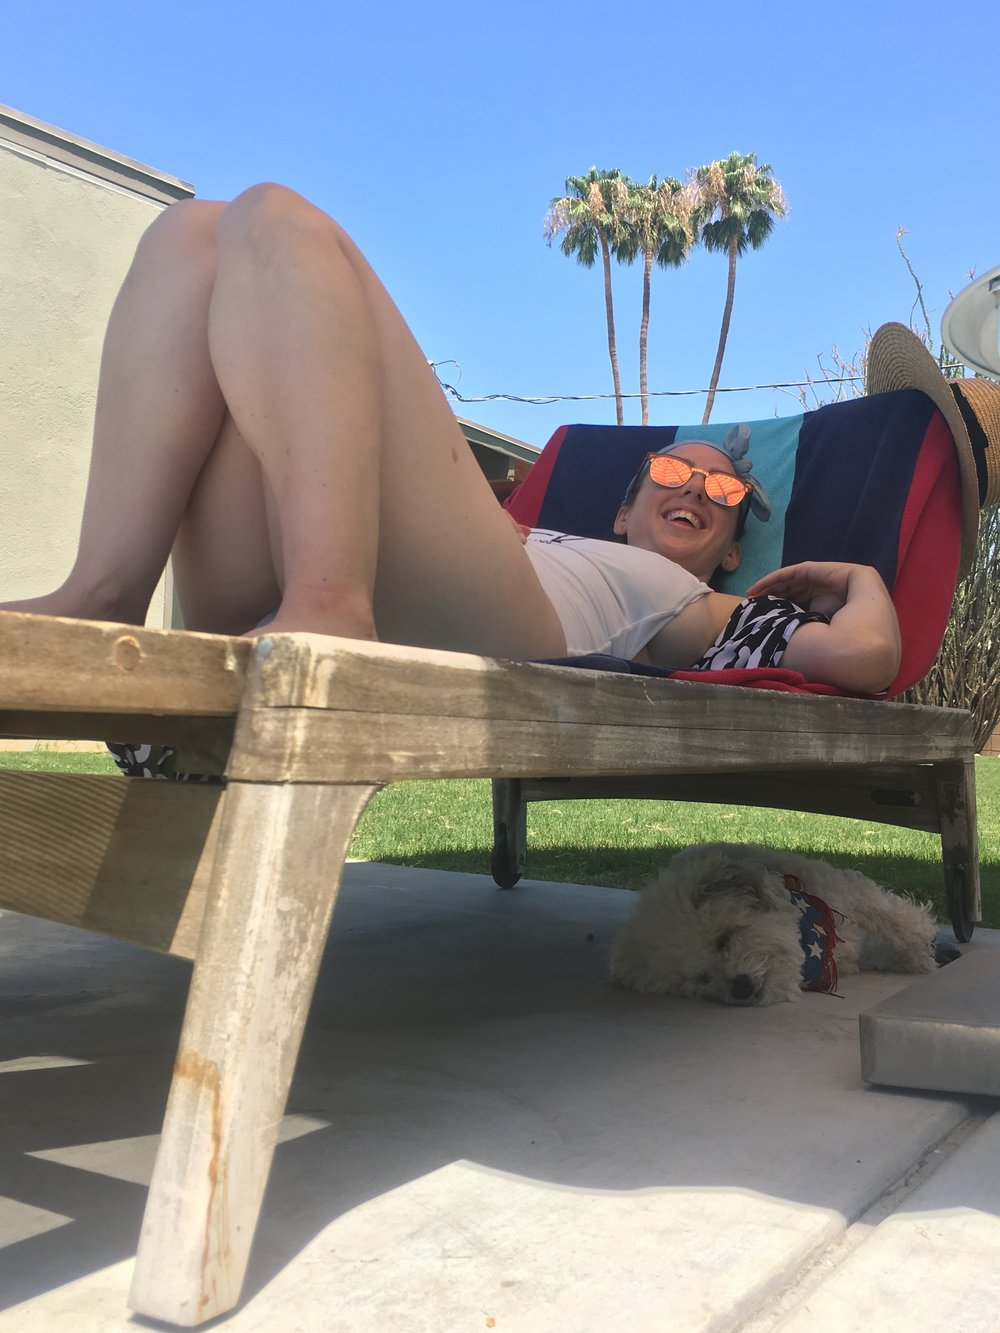 Watson sleeping by the pool in Palm Springs, California | Watson & Walls